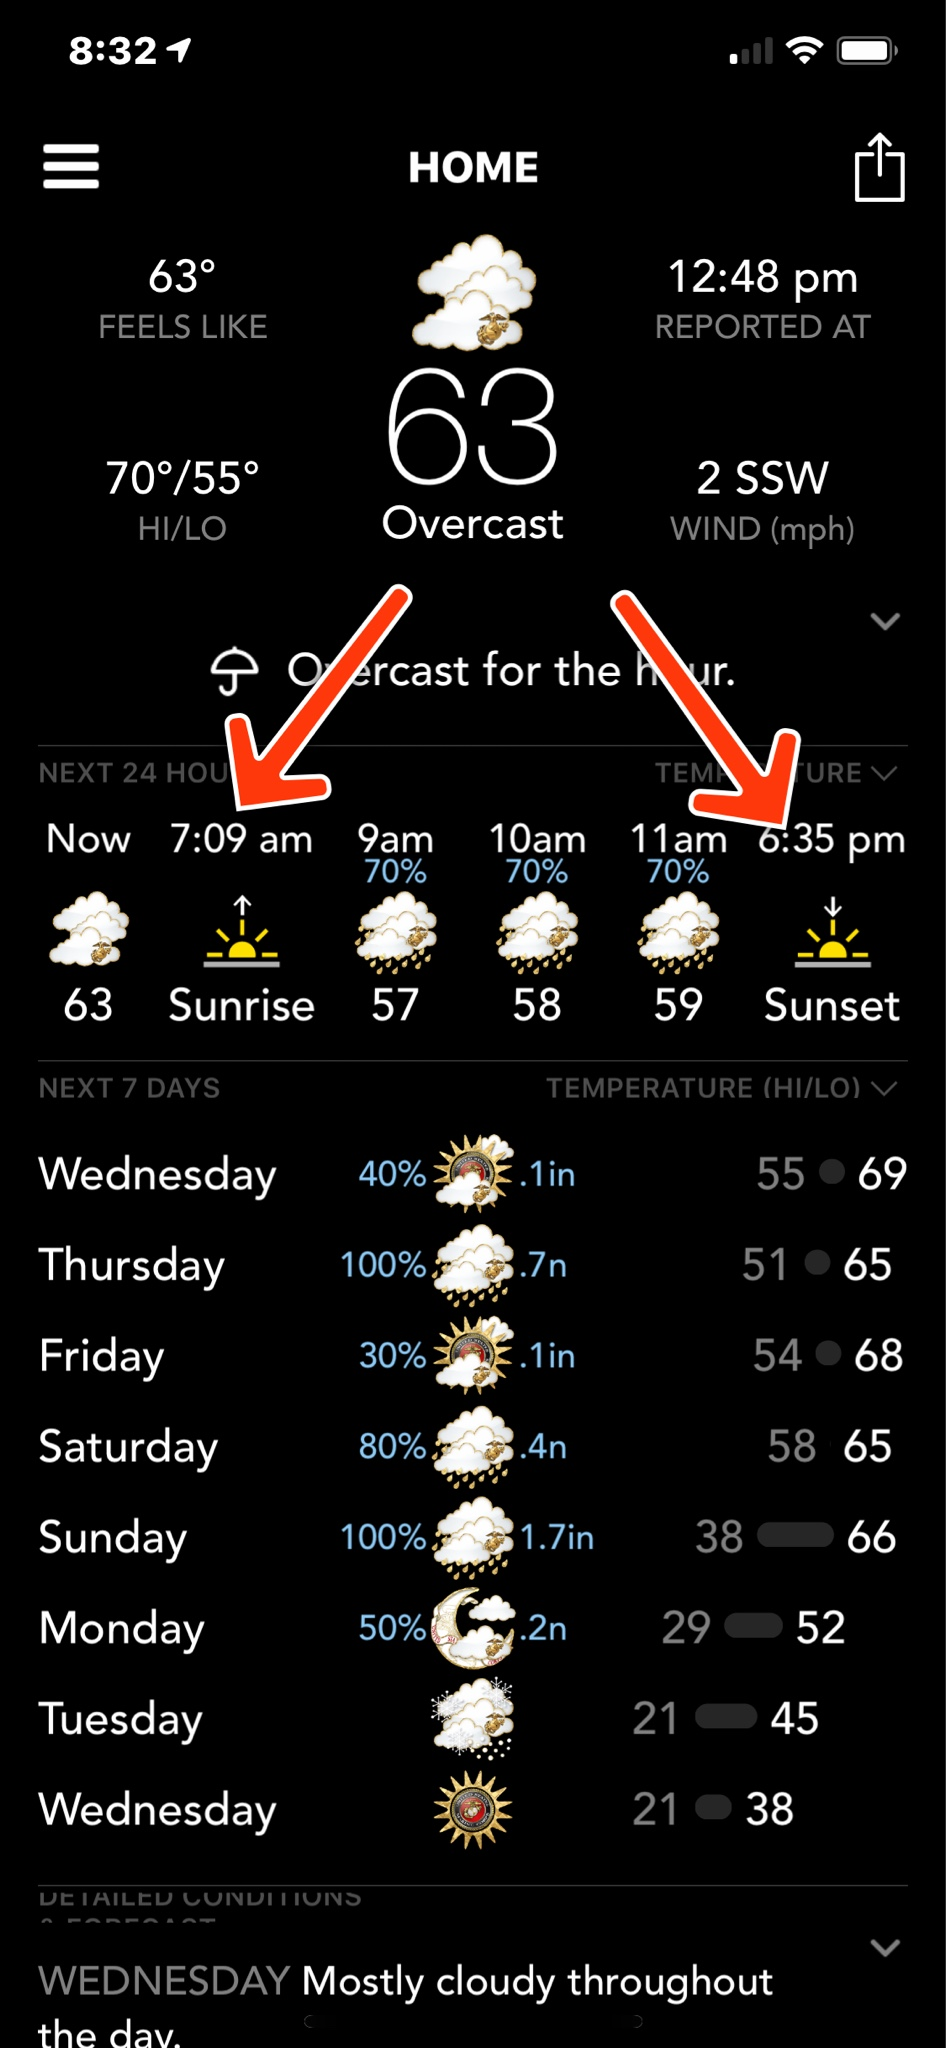 BeWeather v3 (Beta) for iPhone - Page 4 - iPhone, iPad, iPod